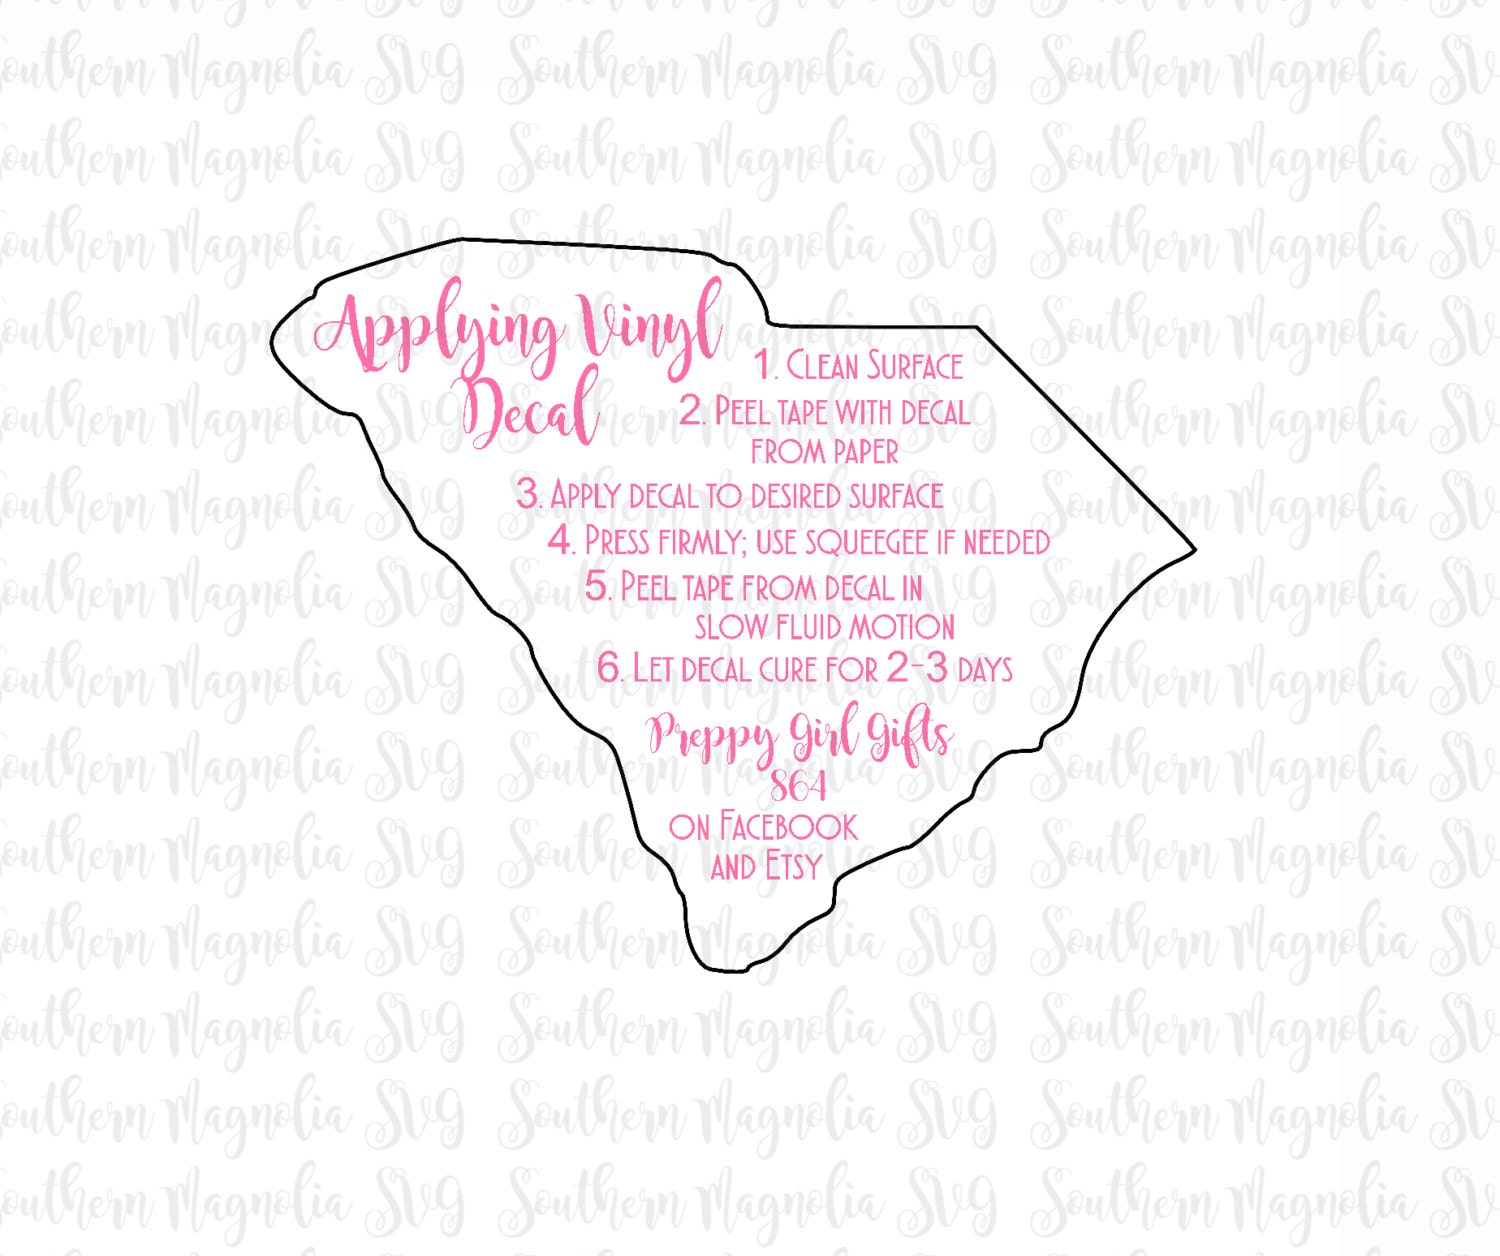 South Carolina Vinyl Application Instruction Card Print And - Custom vinyl decal application instructionscare card printable care card instructions printable care